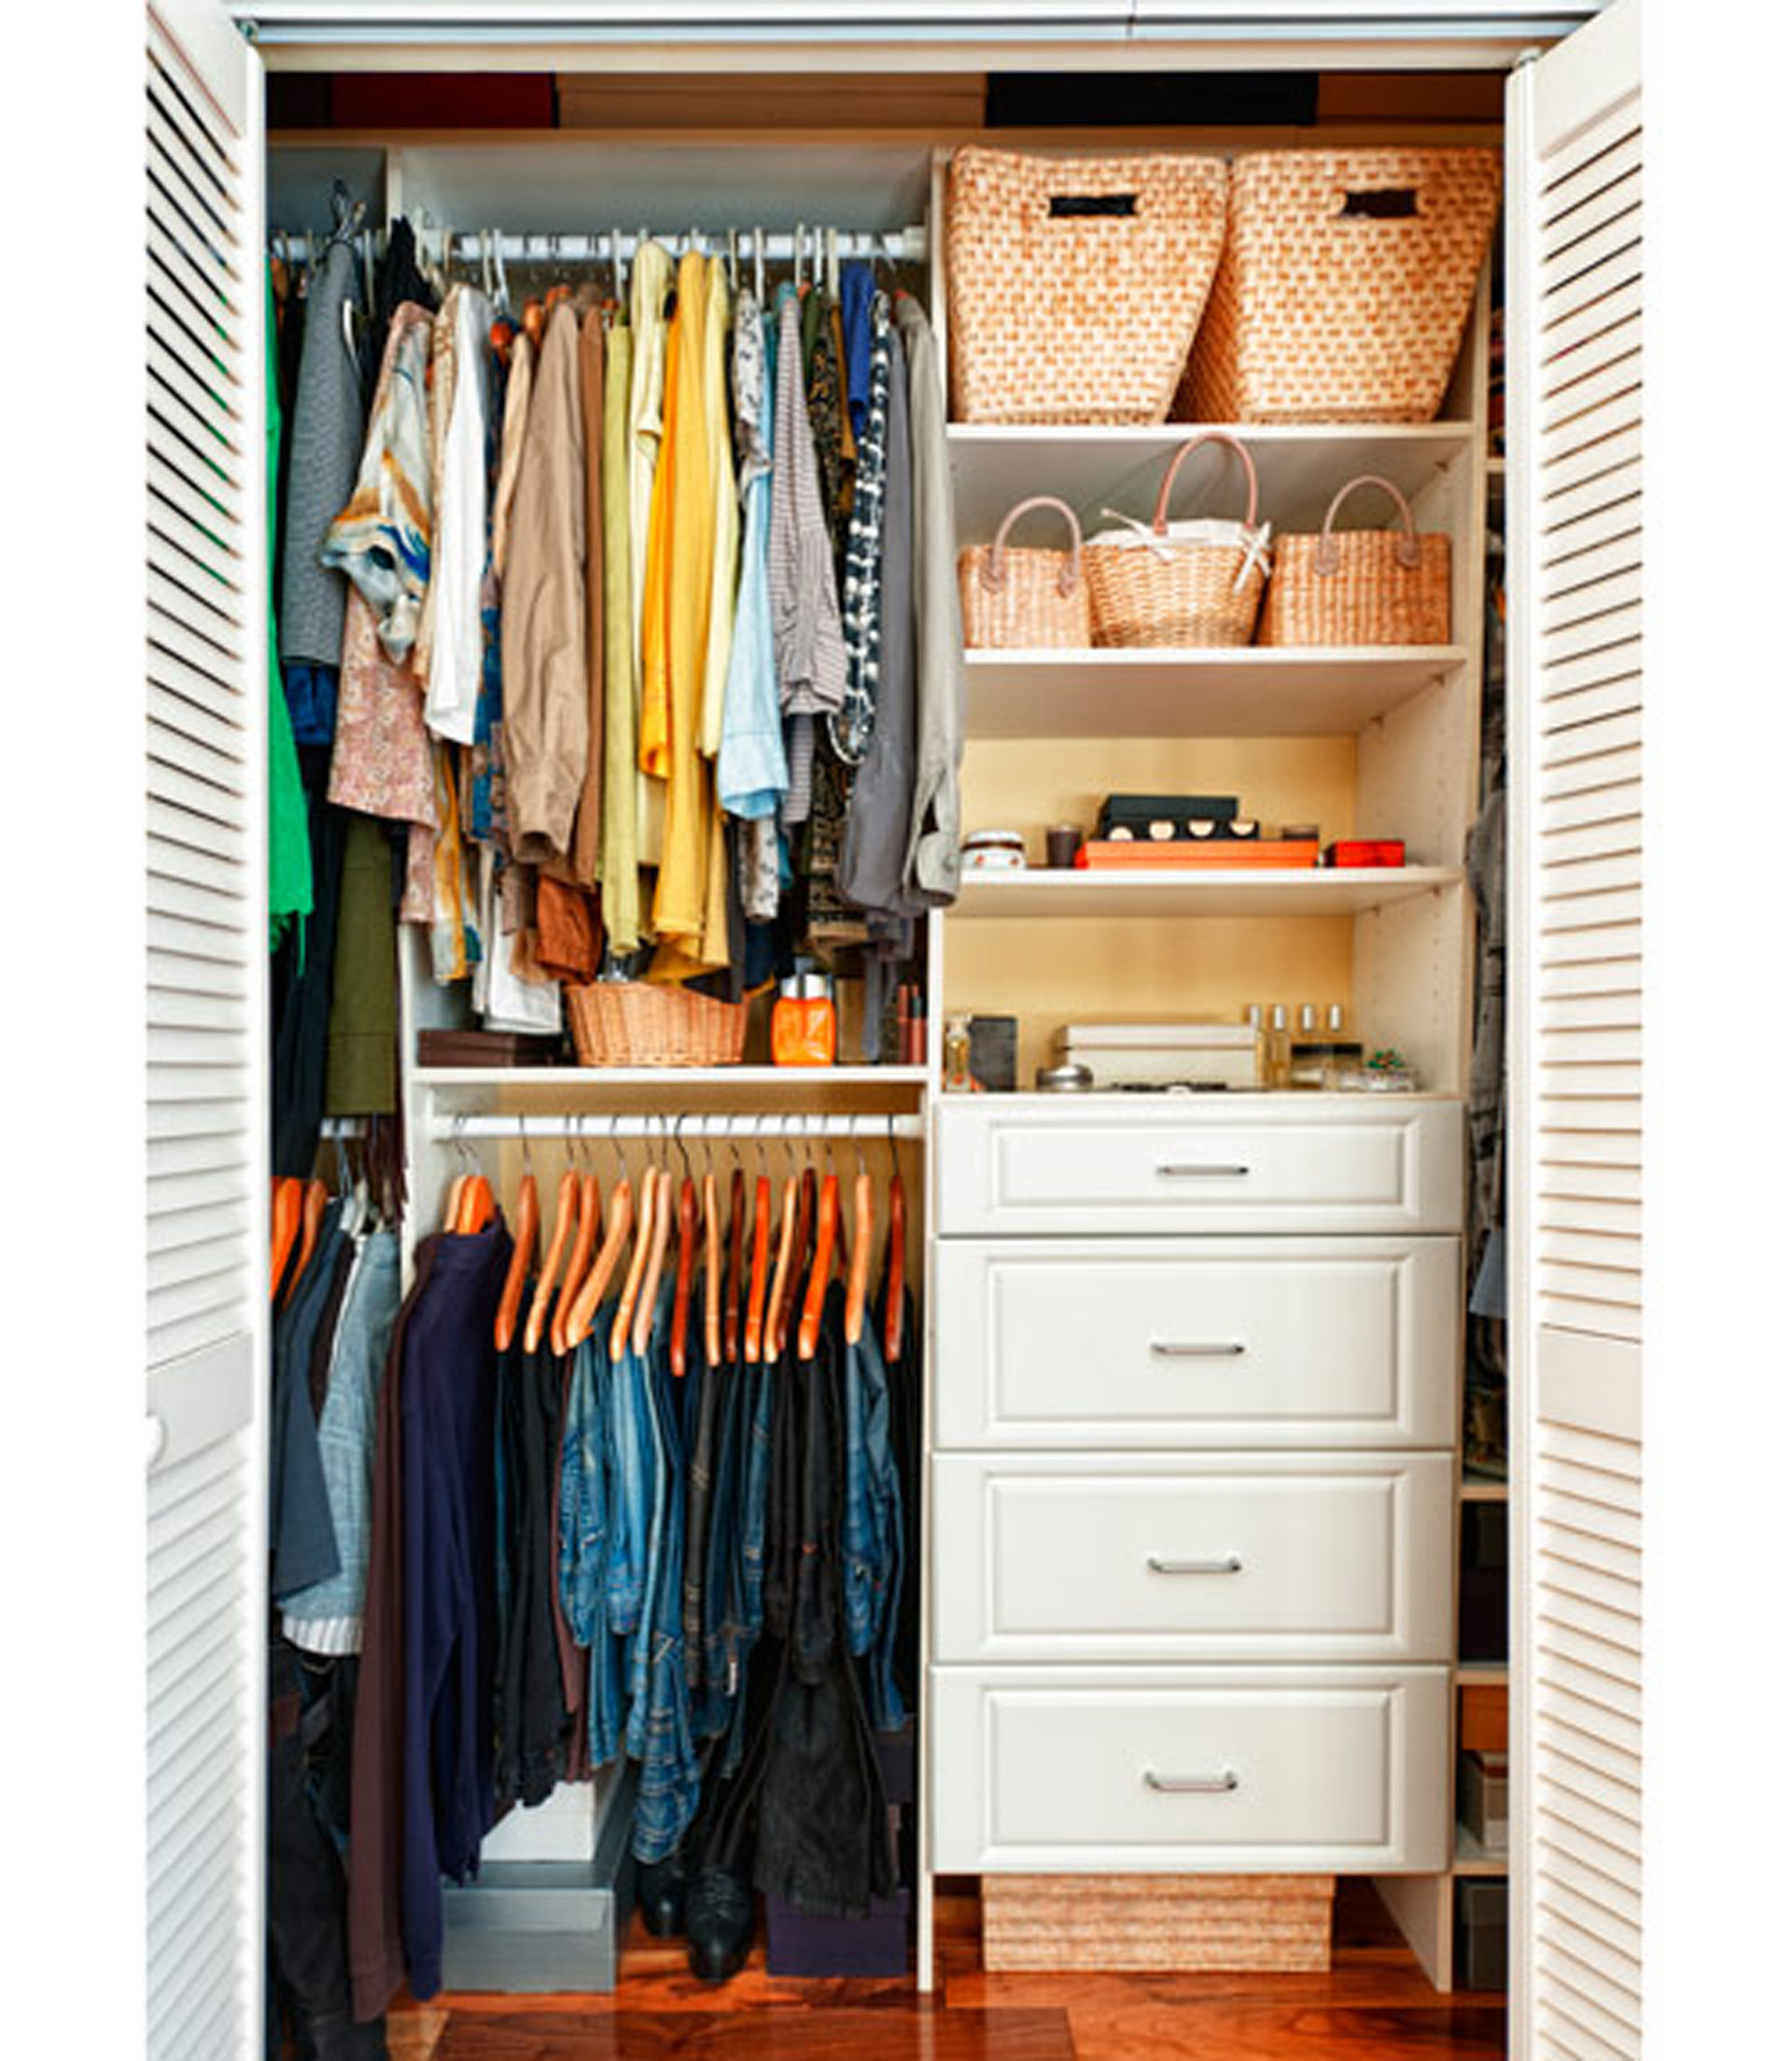 Solutions for closet solutions and organization for Tiny apartment storage ideas